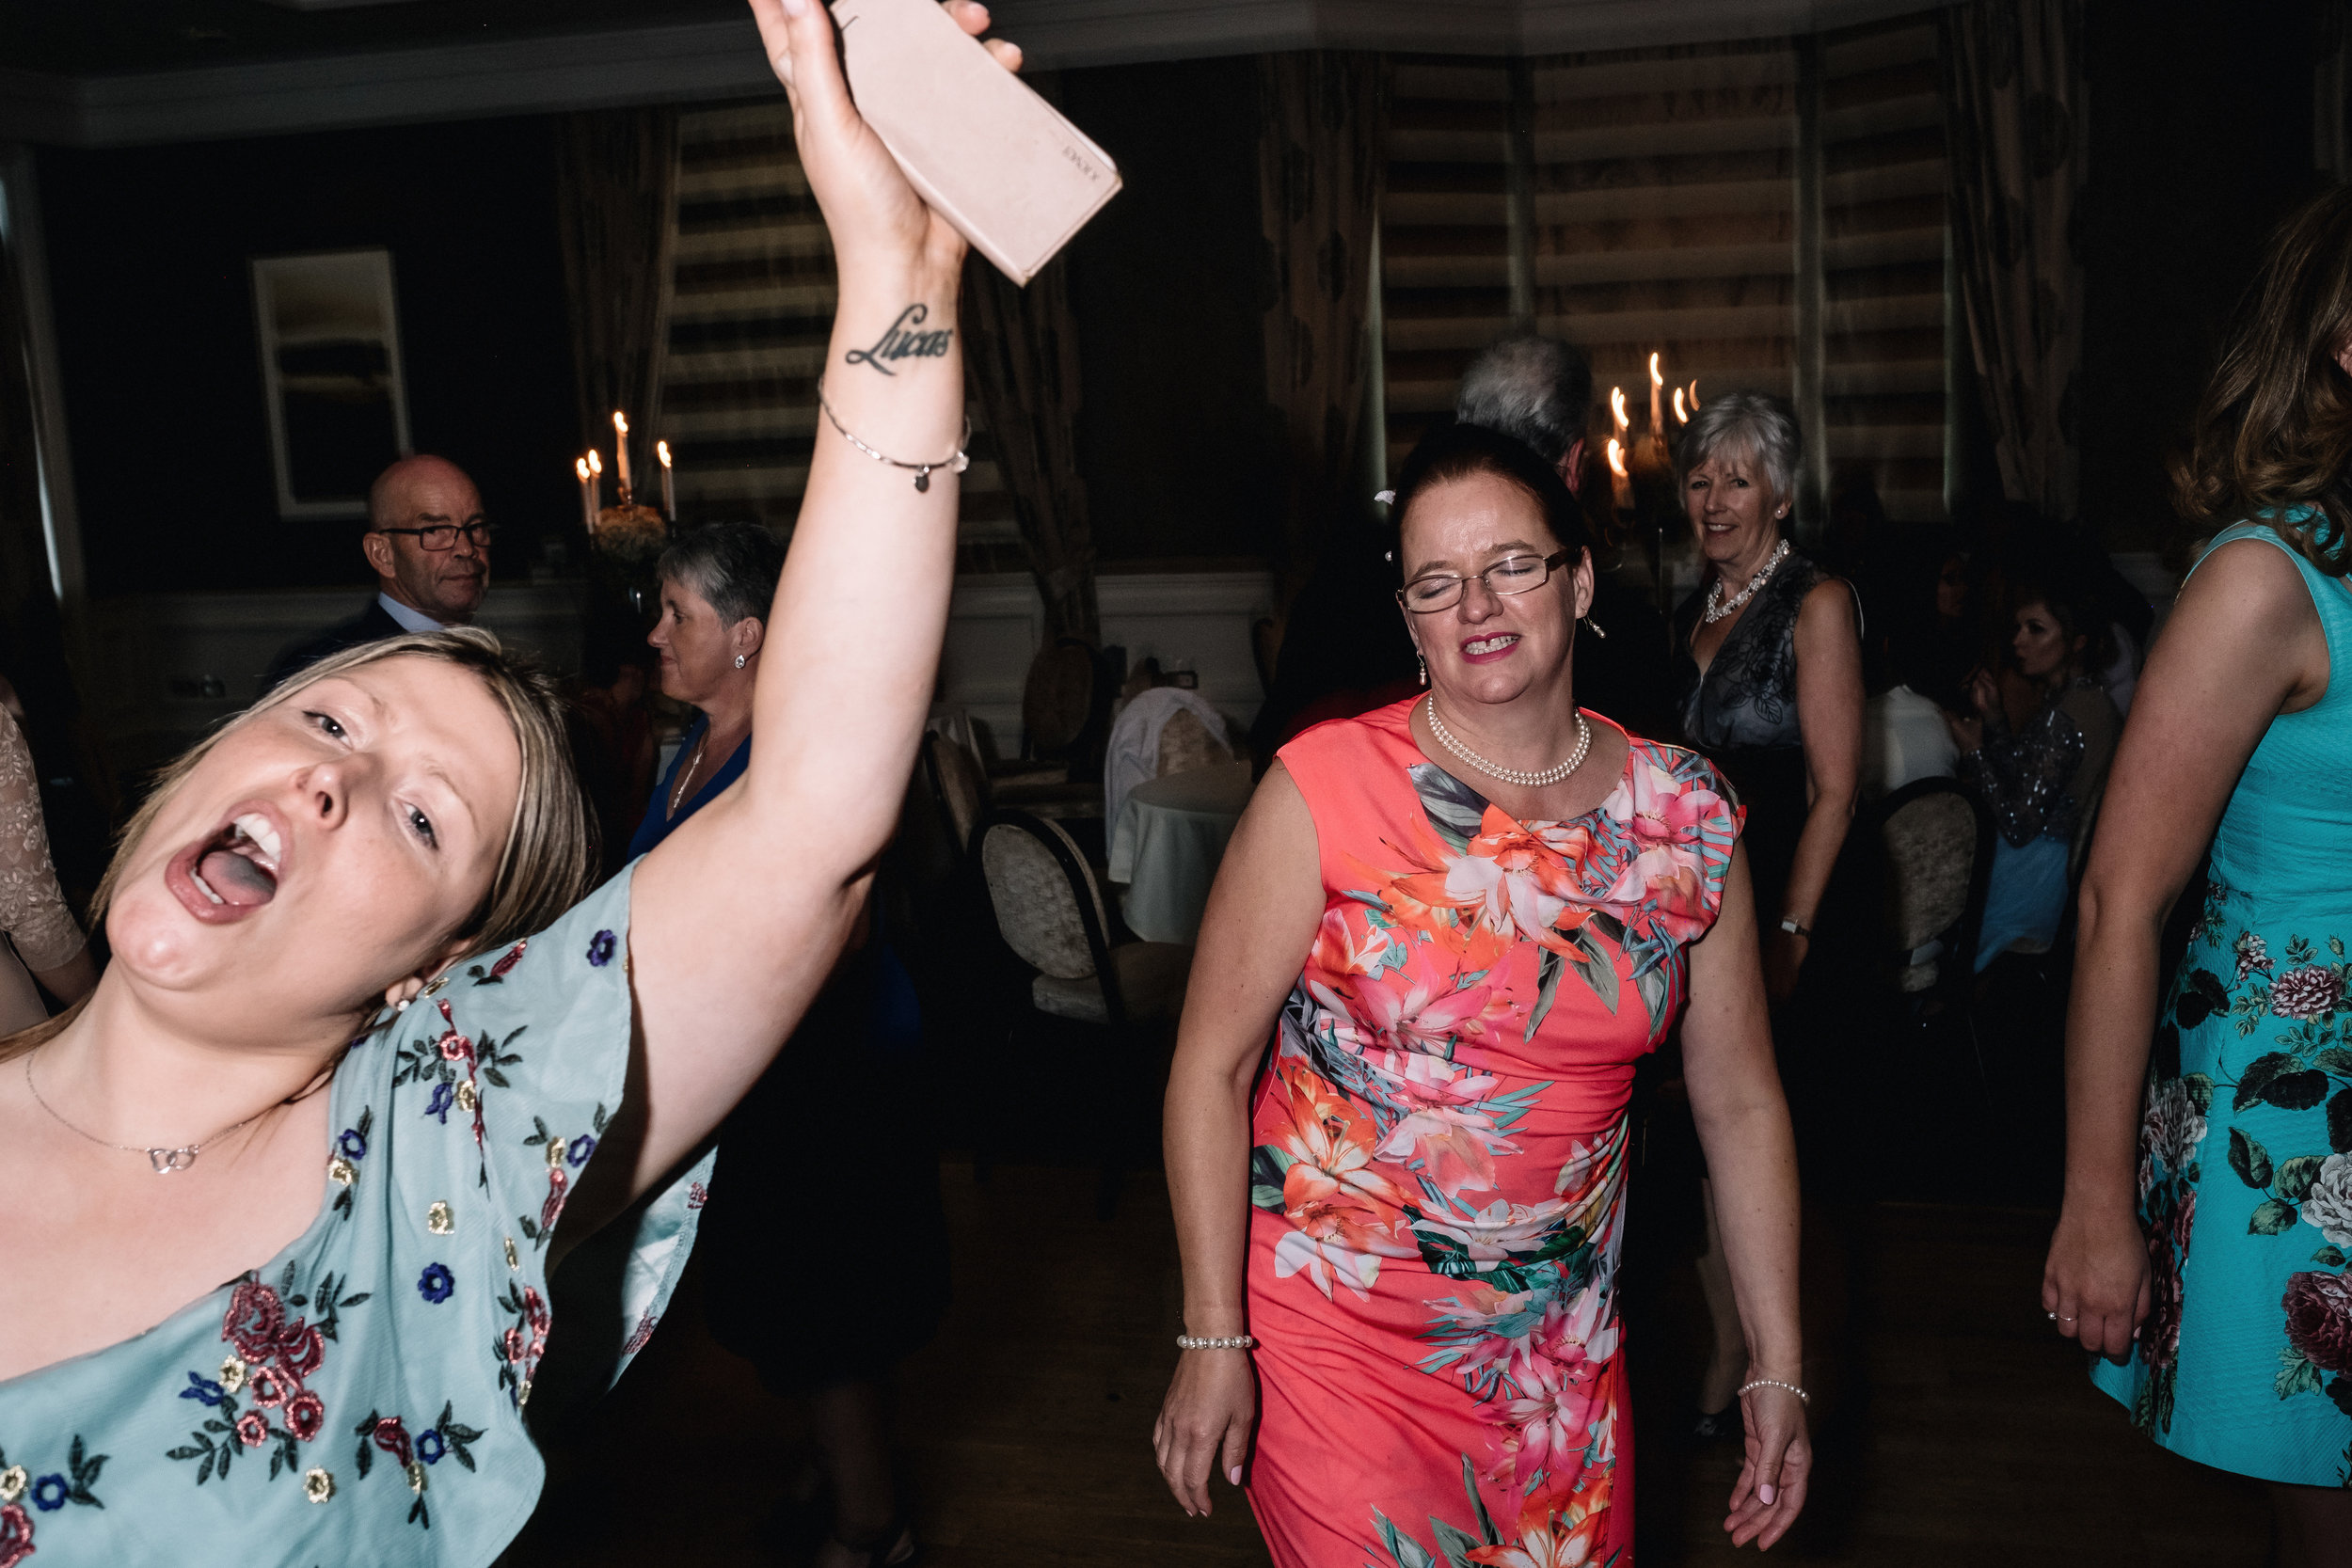 Animated guests on dance floor